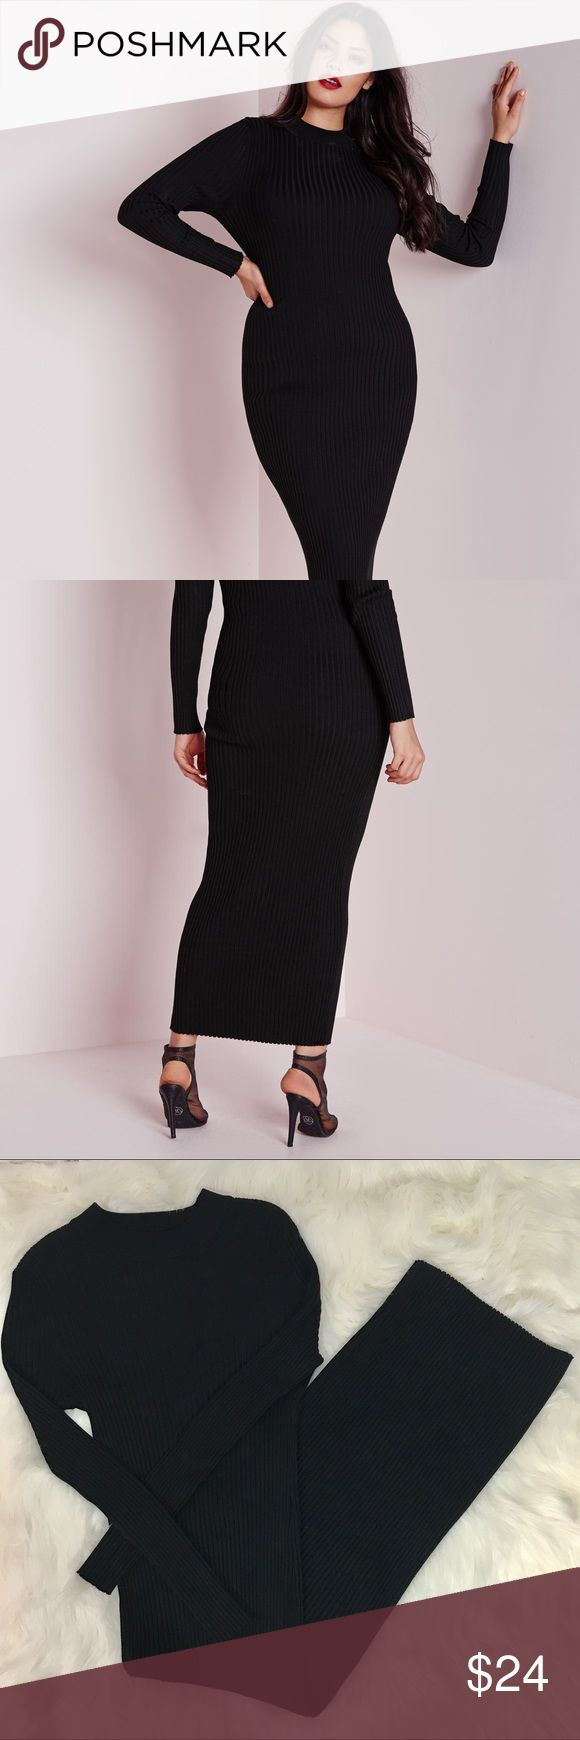 "Missguided ""Maxi"" Style Ribbed Dress Maxi style ribbed knitted dress.  ""Plus Size"" UK16/US12.   -very stretchy -approx length 55.5"" -excellent condition Missguided + Dresses Maxi"